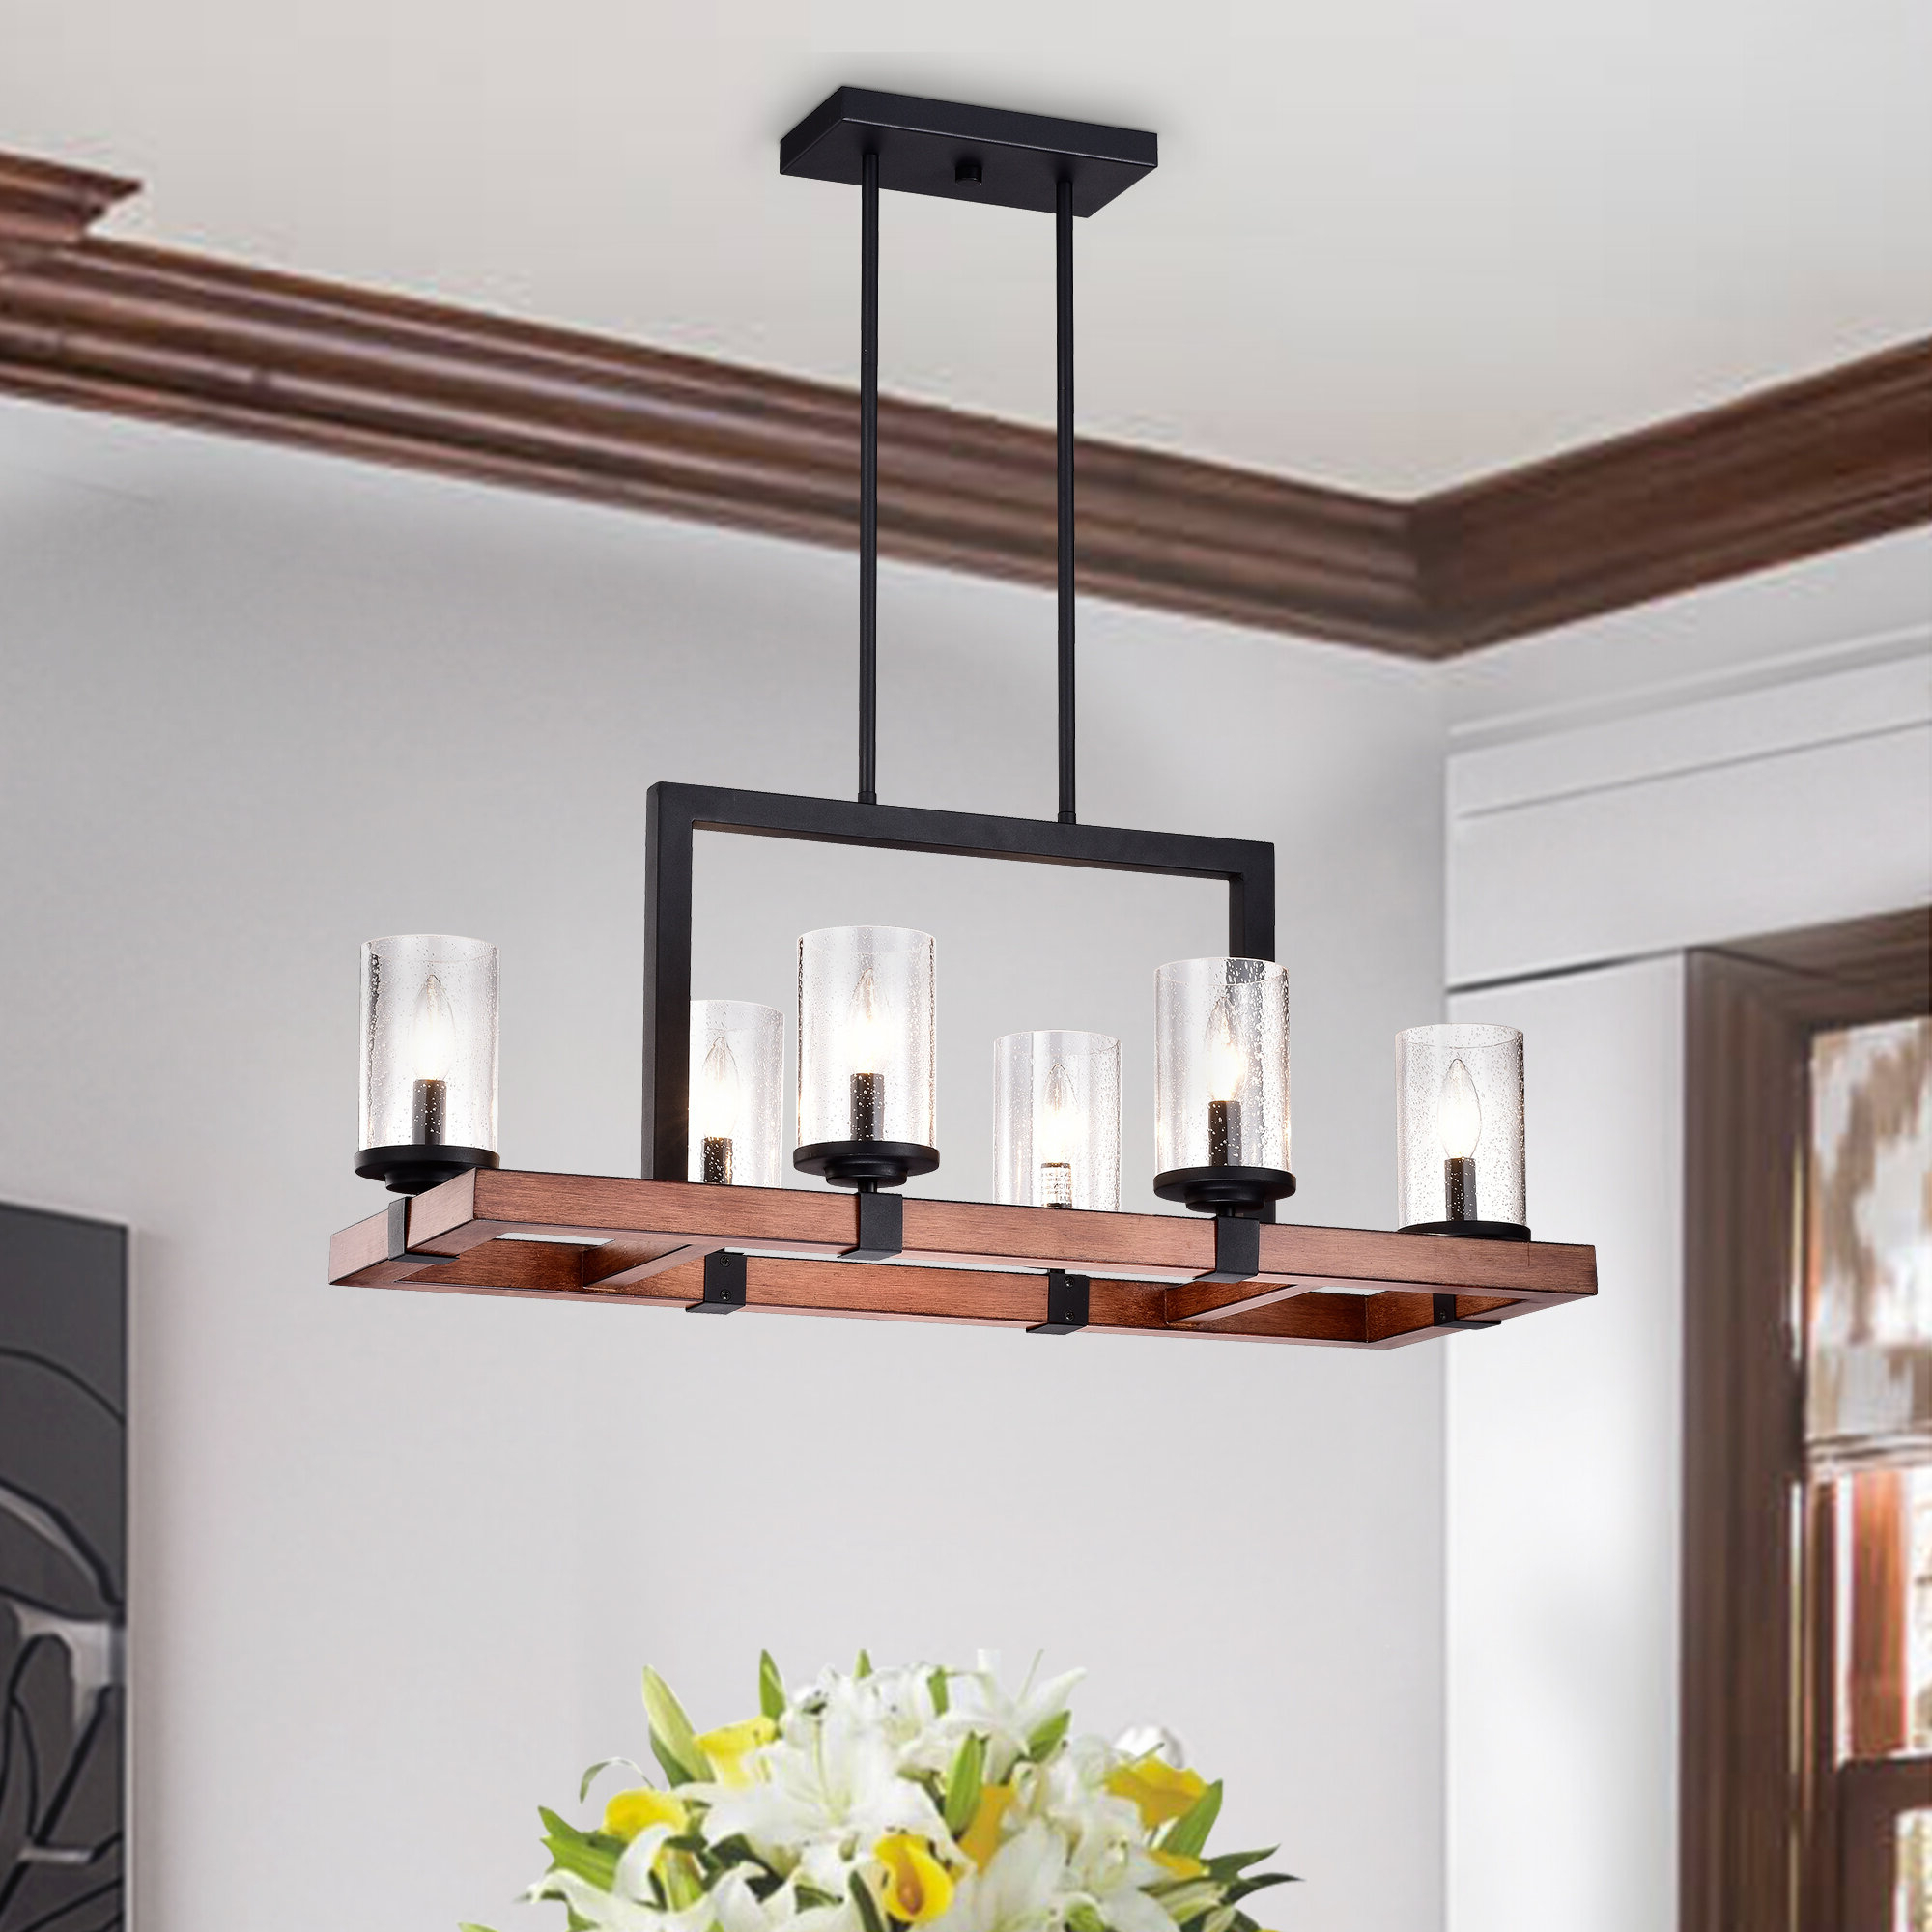 Zion 6 Light Kitchen Island Pendant With Well Known Novogratz Vintage 5 Light Kitchen Island Bulb Pendants (Gallery 15 of 20)